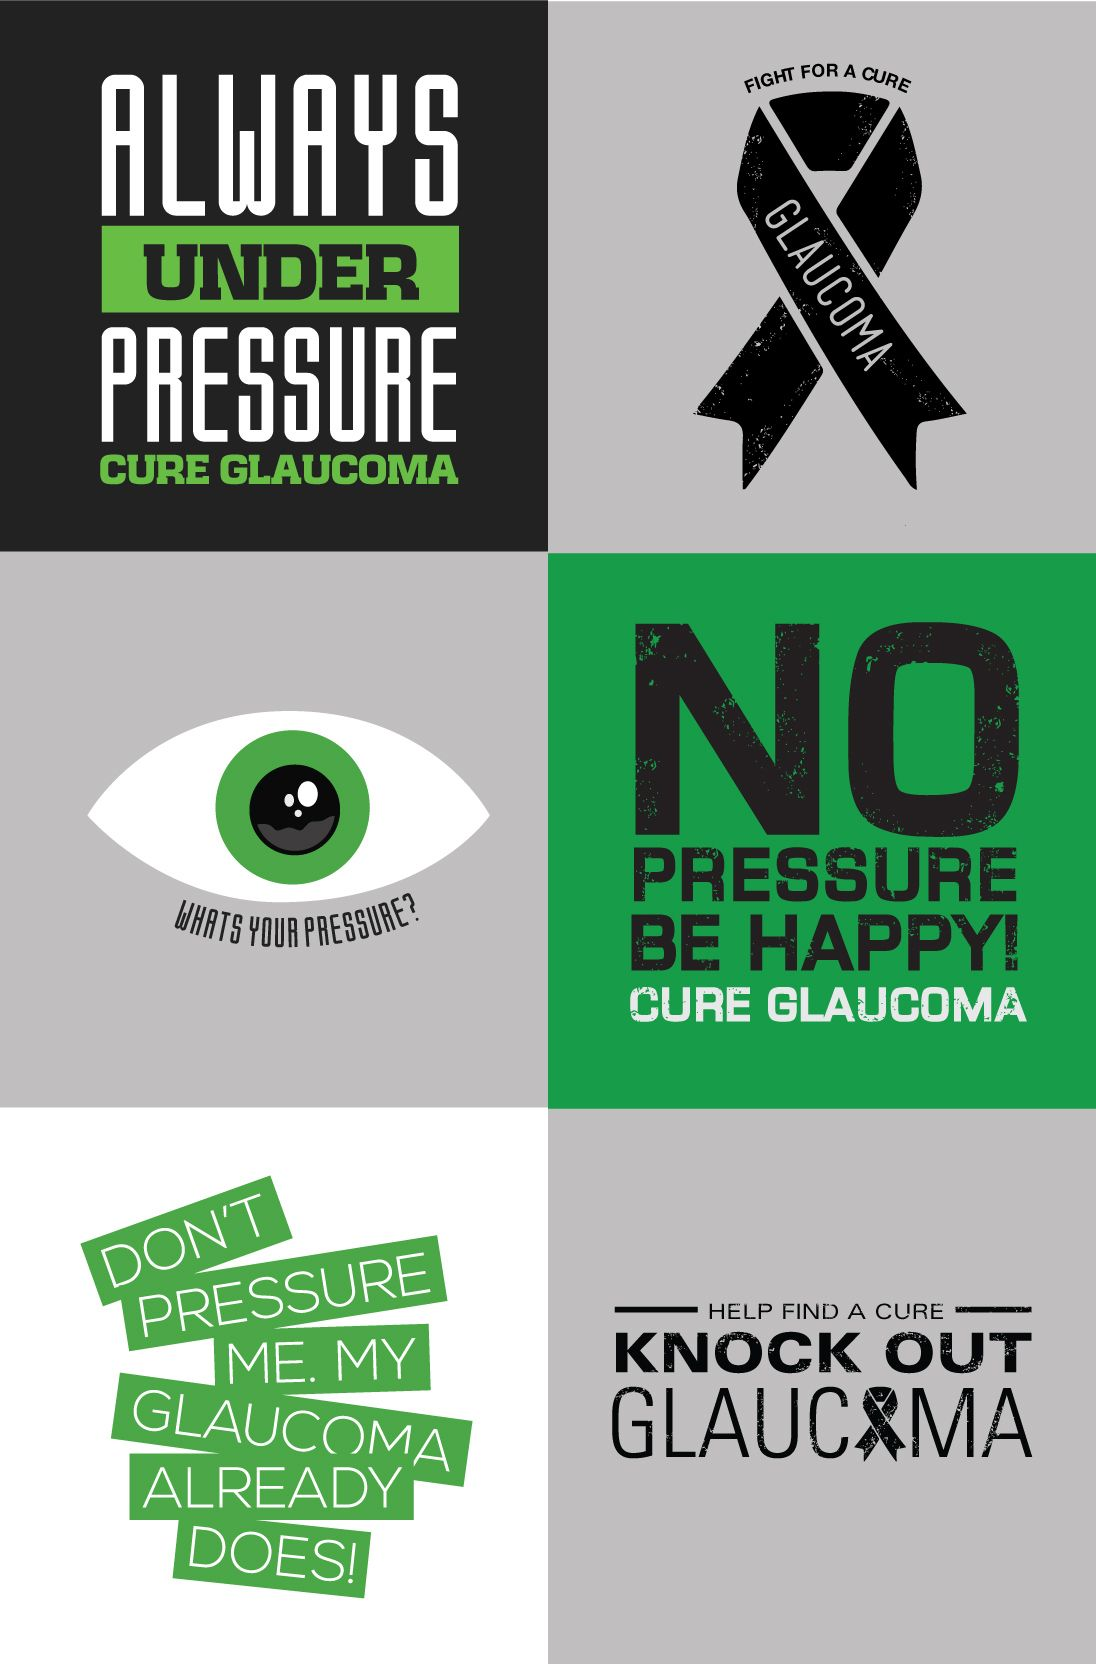 Vote for your favorite awareness tshirt design